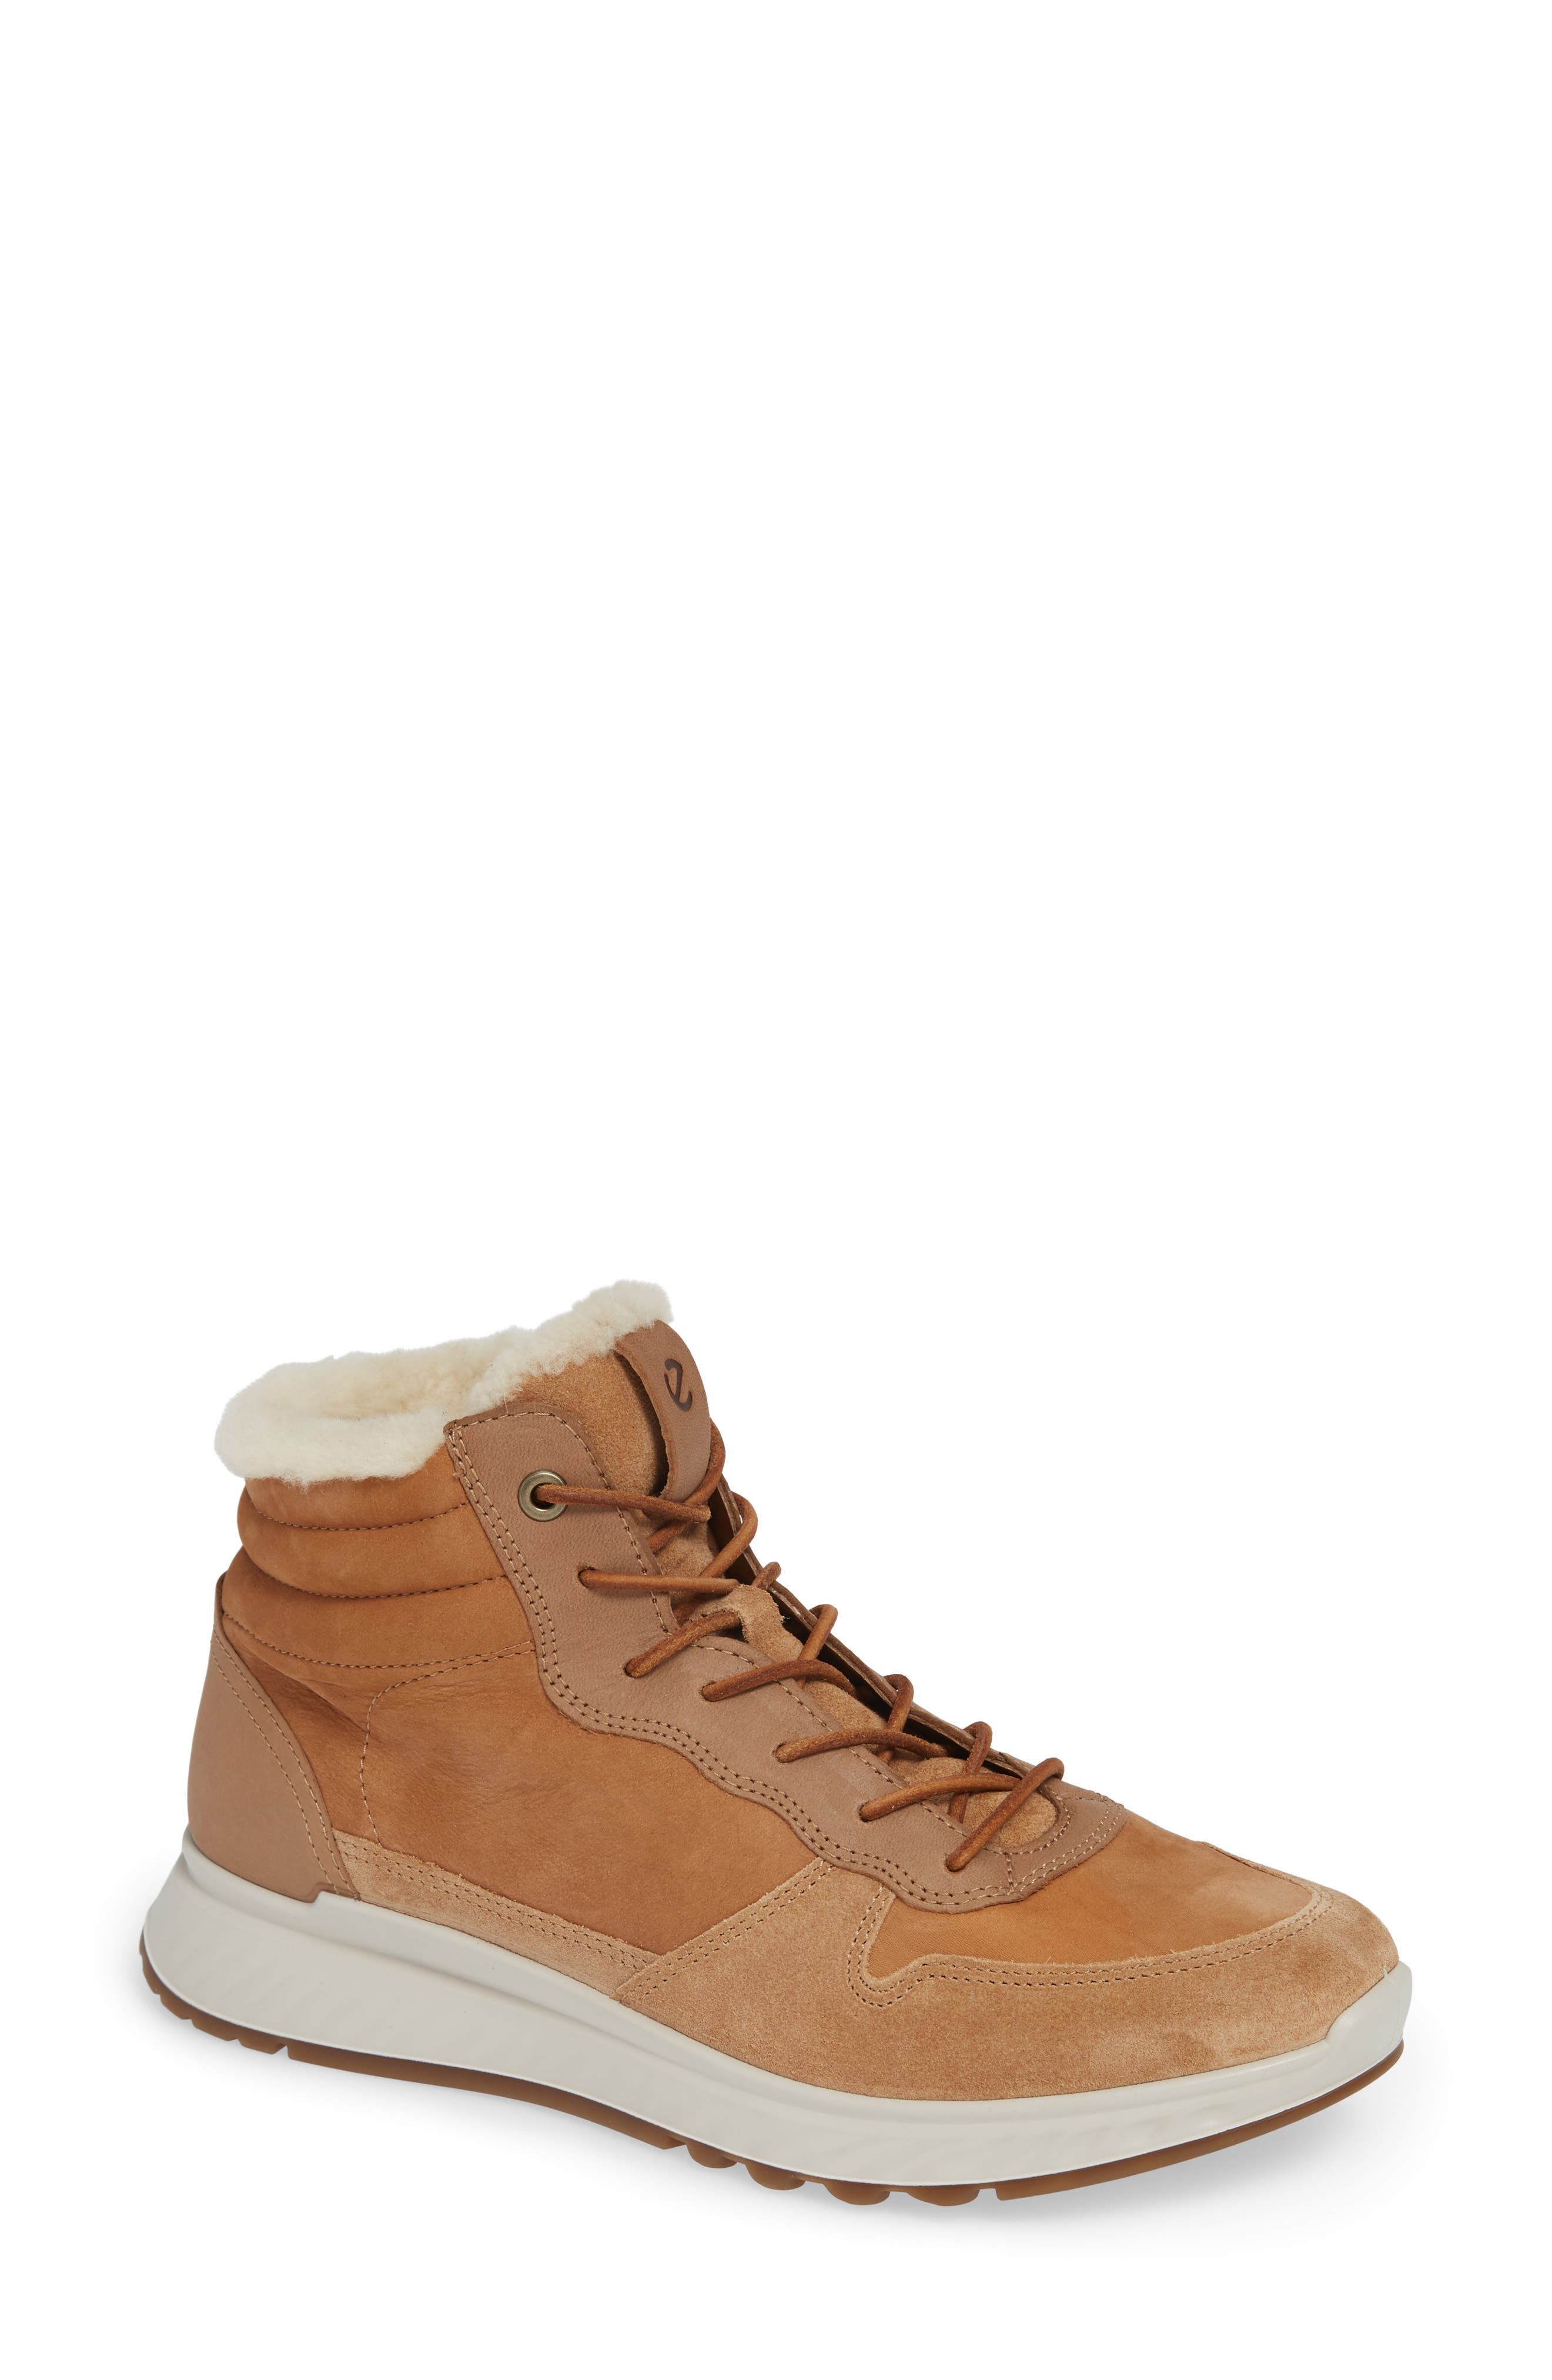 ST1 Genuine Shearling High Top Sneaker,                         Main,                         color, 200